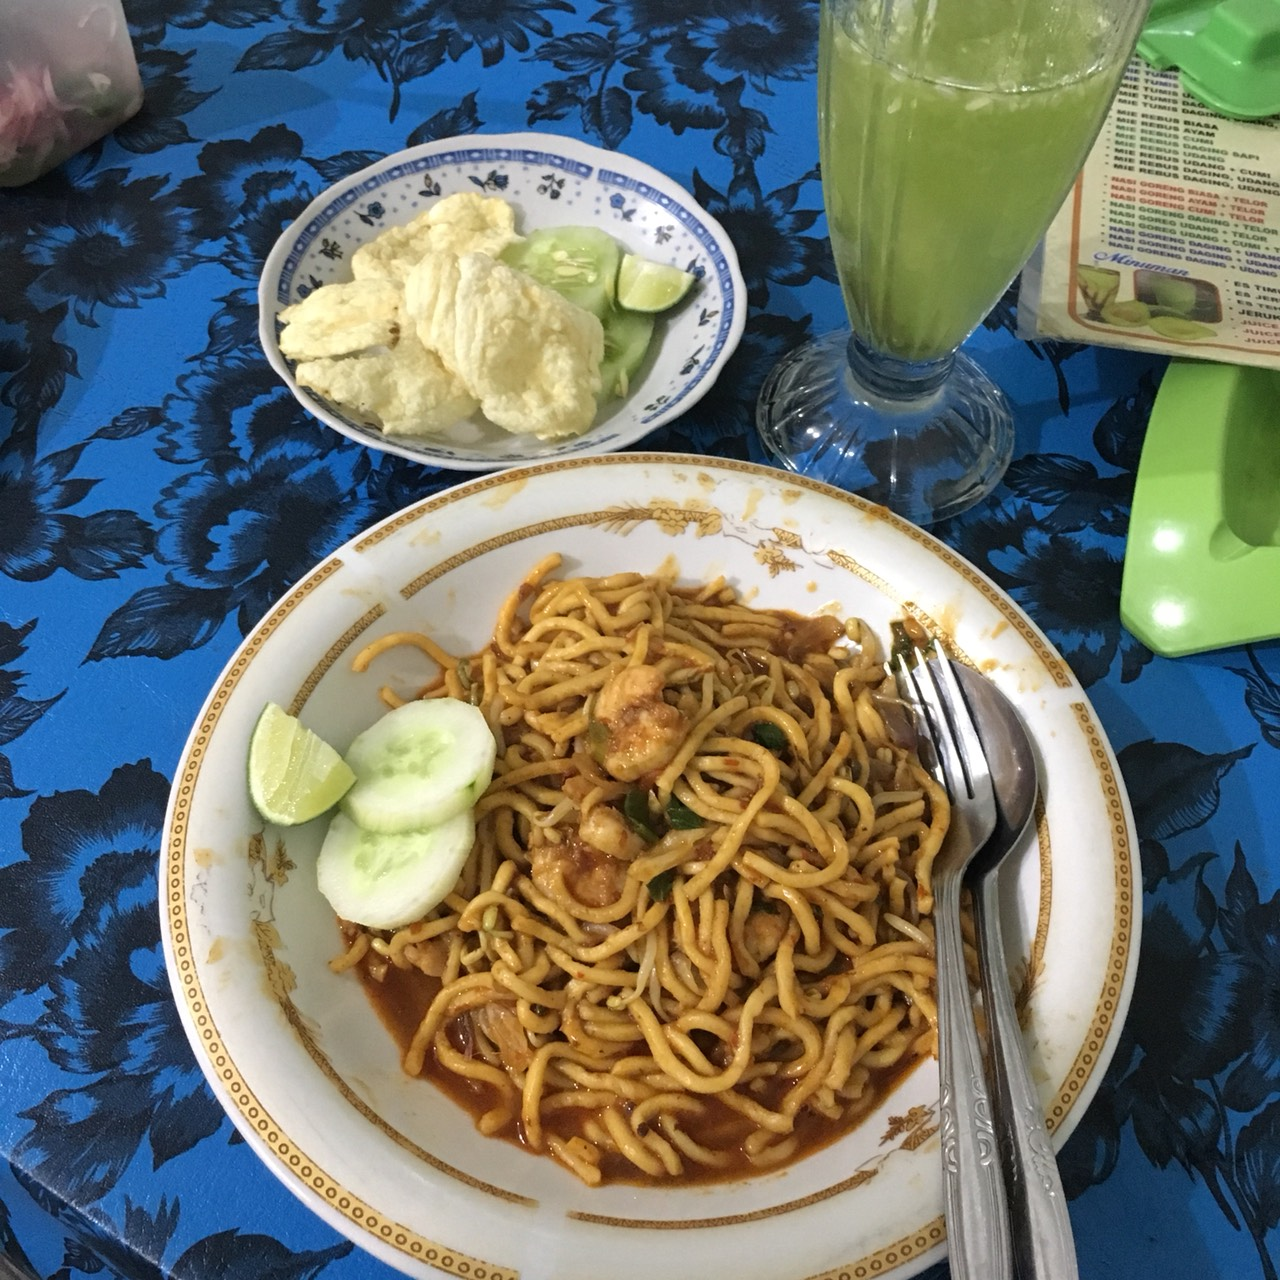 rumoh mie aceh